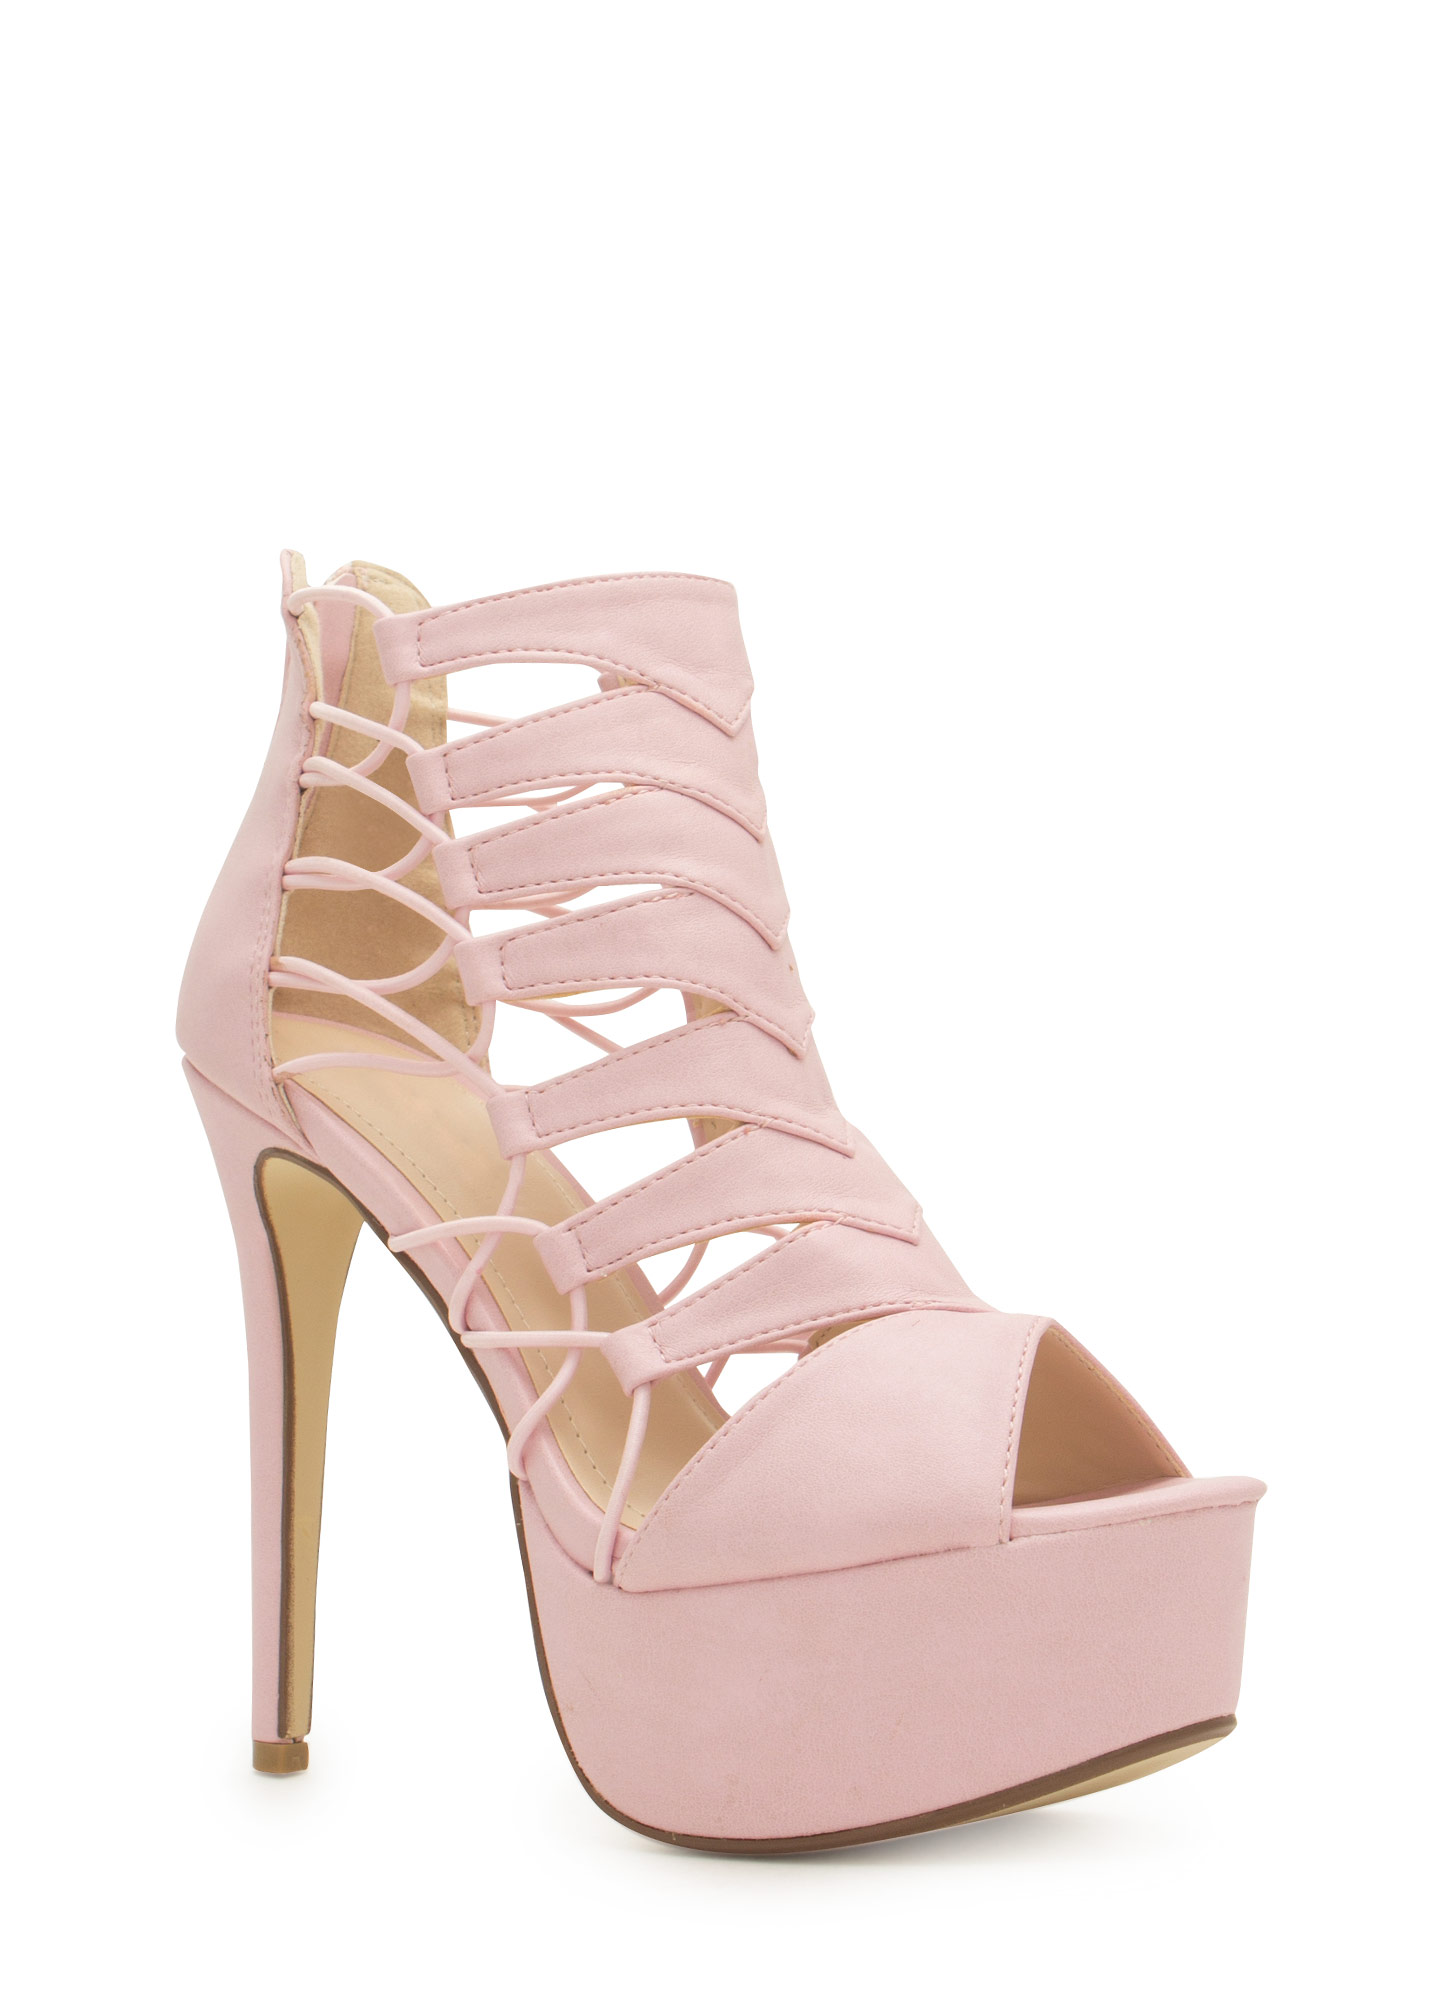 Epic Scale Faux Leather Heels PINK